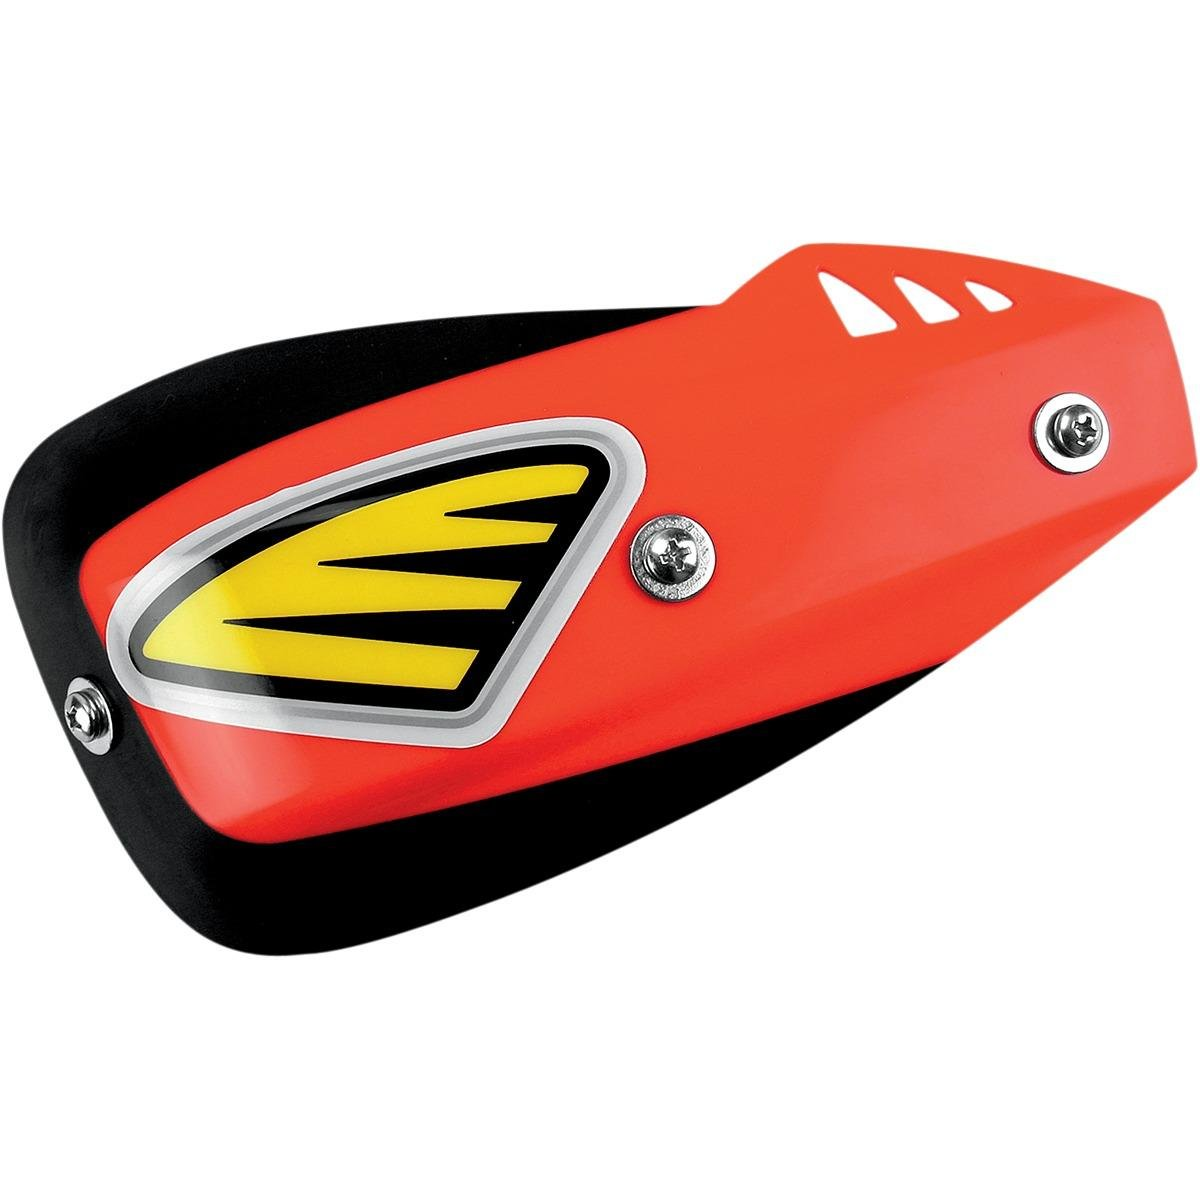 Cycra Pro Bend Enduro DX Replacement Shields RED